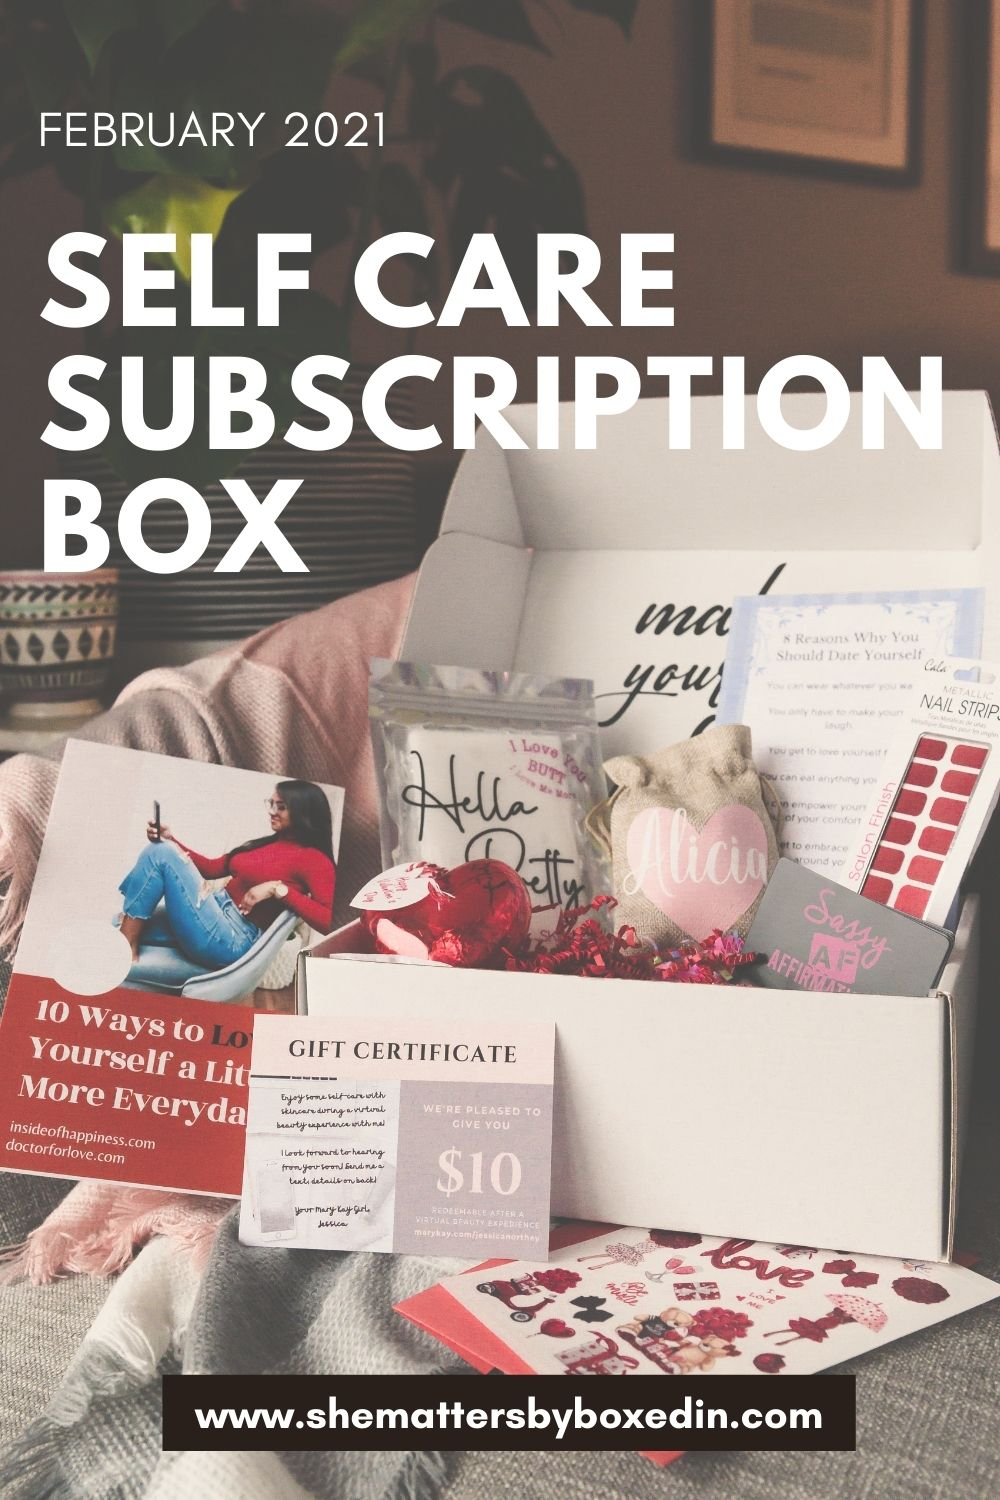 February 2021 Self Care Subscription Box Features